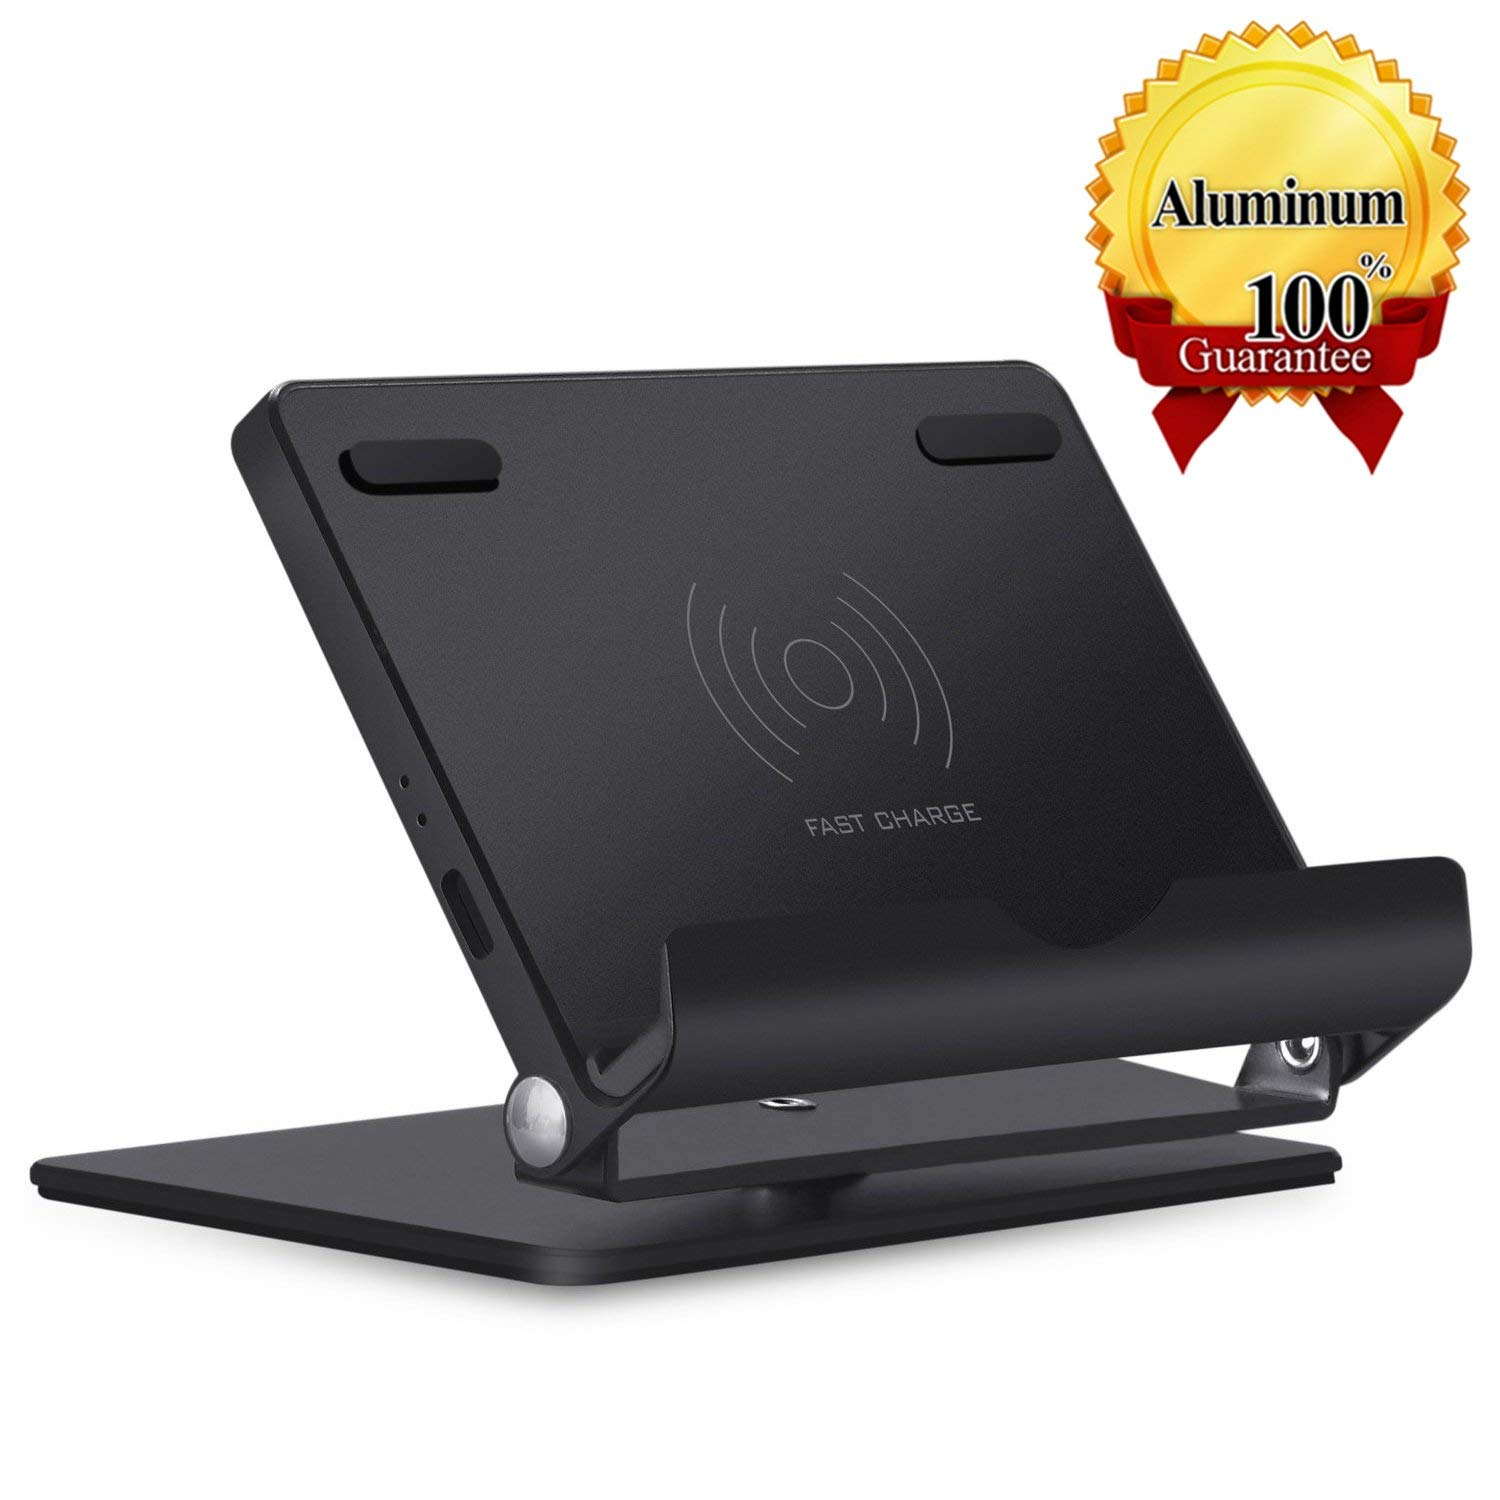 VENROII QI Fast Wireless Charger Stand, Wireless Charging Stand Aluminum Multi-Angle Universal Phone and Tablet Stand QI Wireless Charging Pad for ...